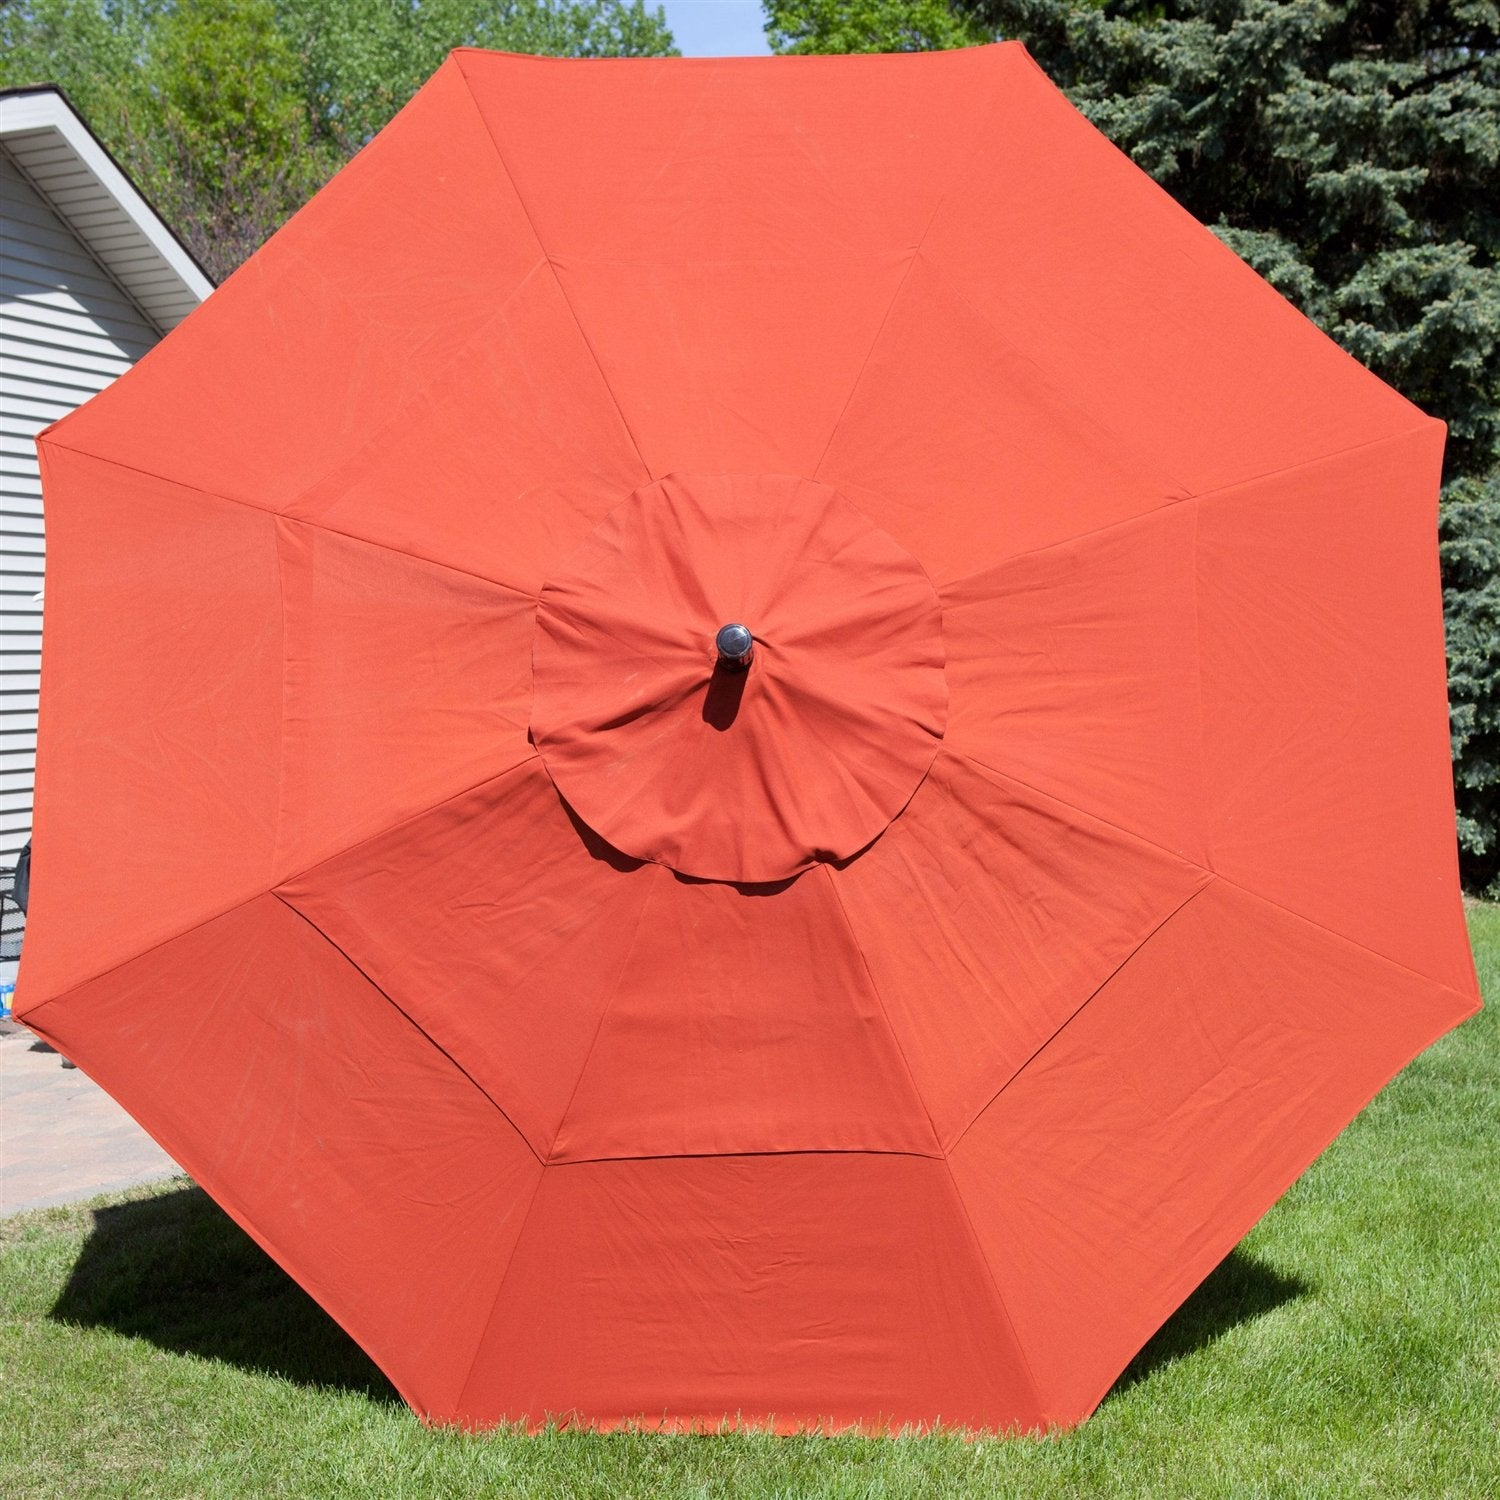 Patio 11-Ft Market Umbrella with Push Button Tilt with Brick Red Orange Shade